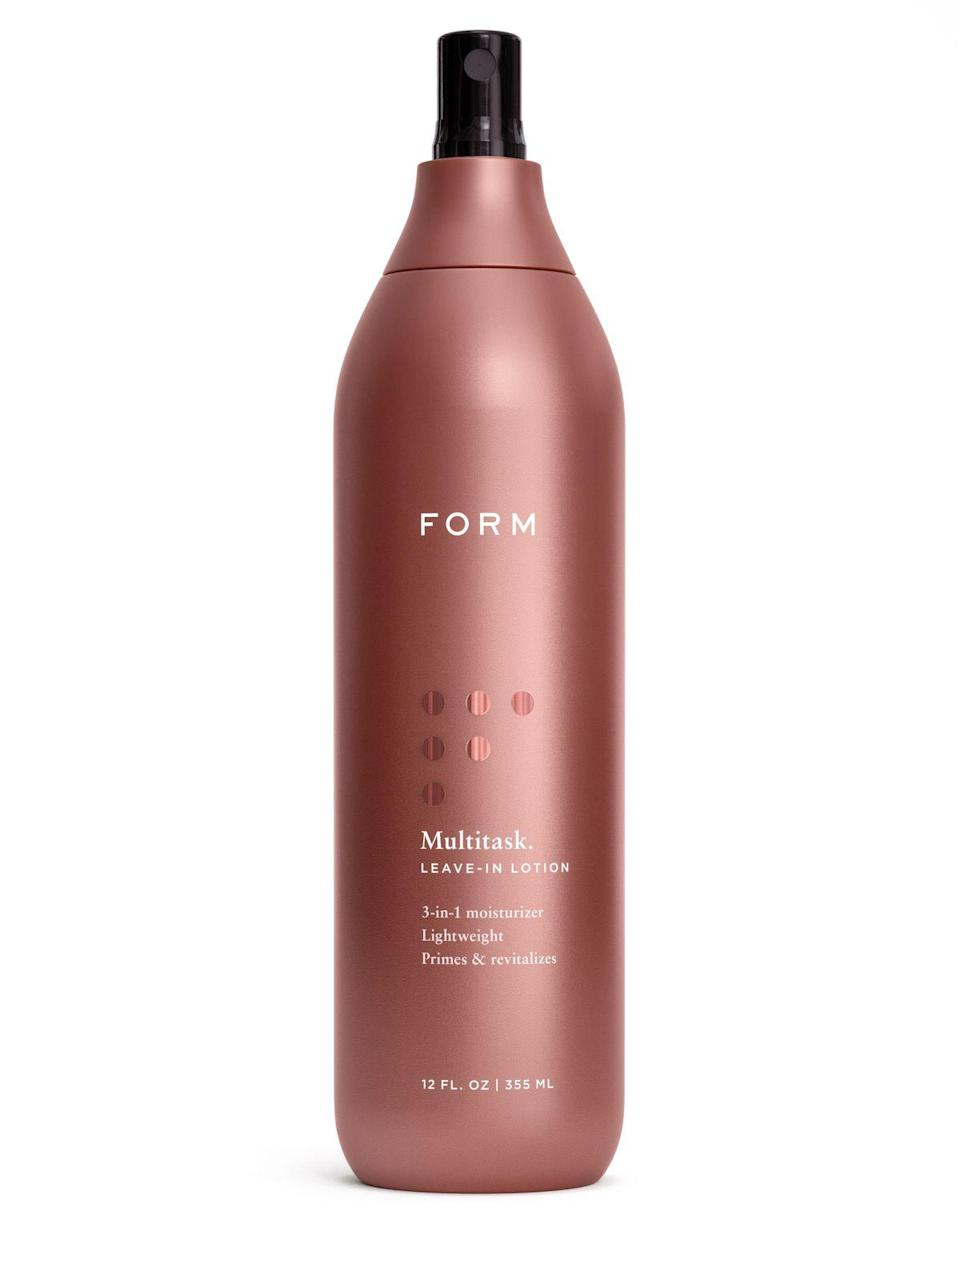 """<p><strong>Account</strong></p><p>formbeauty.com</p><p><strong>$474.00</strong></p><p><a href=""""https://formbeauty.com/products/multitask"""" rel=""""nofollow noopener"""" target=""""_blank"""" data-ylk=""""slk:Shop Now"""" class=""""link rapid-noclick-resp"""">Shop Now</a></p><p>FYI there's nothing wrong with <a href=""""https://www.cosmopolitan.com/style-beauty/beauty/a33187/how-to-defrizz-your-hair/"""" rel=""""nofollow noopener"""" target=""""_blank"""" data-ylk=""""slk:frizz"""" class=""""link rapid-noclick-resp"""">frizz</a>, but if you're over dealing with those hairs that won't lay flat no matter how much product you apply, this leave-in conditioner is a game-changer. The <strong>marshmallow-light blend of argan oil and grapeseed oil adds moisture back into your curls,</strong> smooths the cuticle out, and makes those annoying-ass flyaways a thing of the past.</p>"""